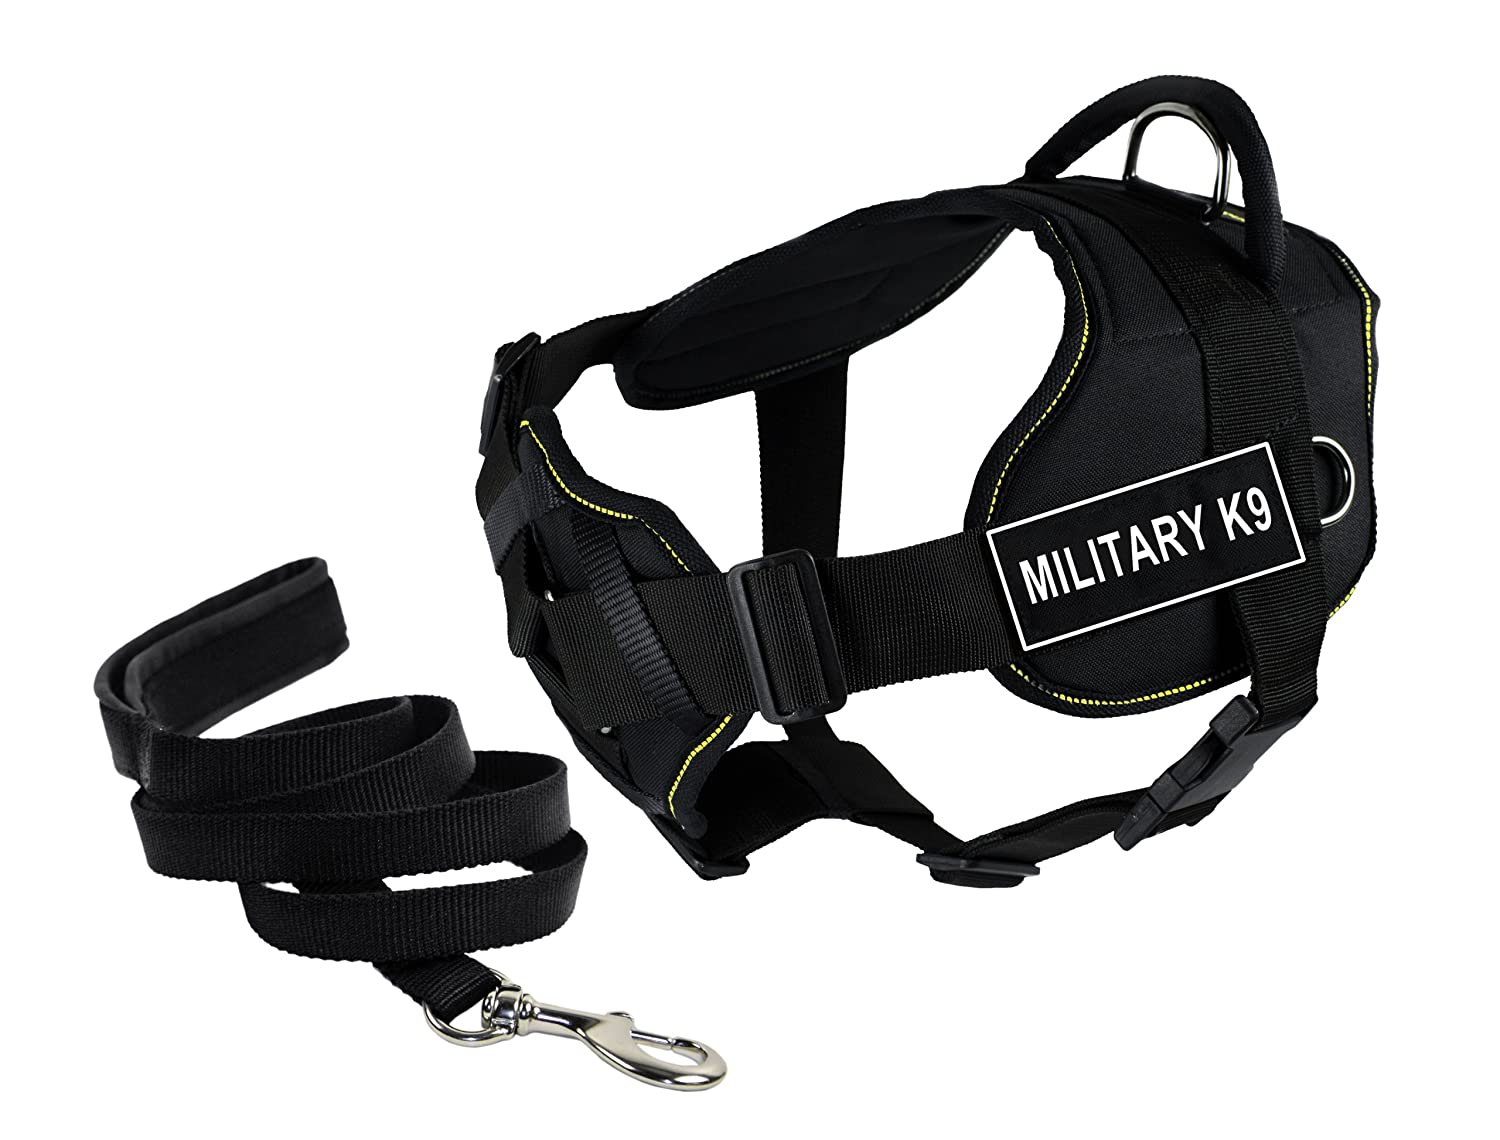 Dean & Tyler's DT Fun Chest Support MILITARY K9 Harness, Large, with 6 ft Padded Puppy Leash.